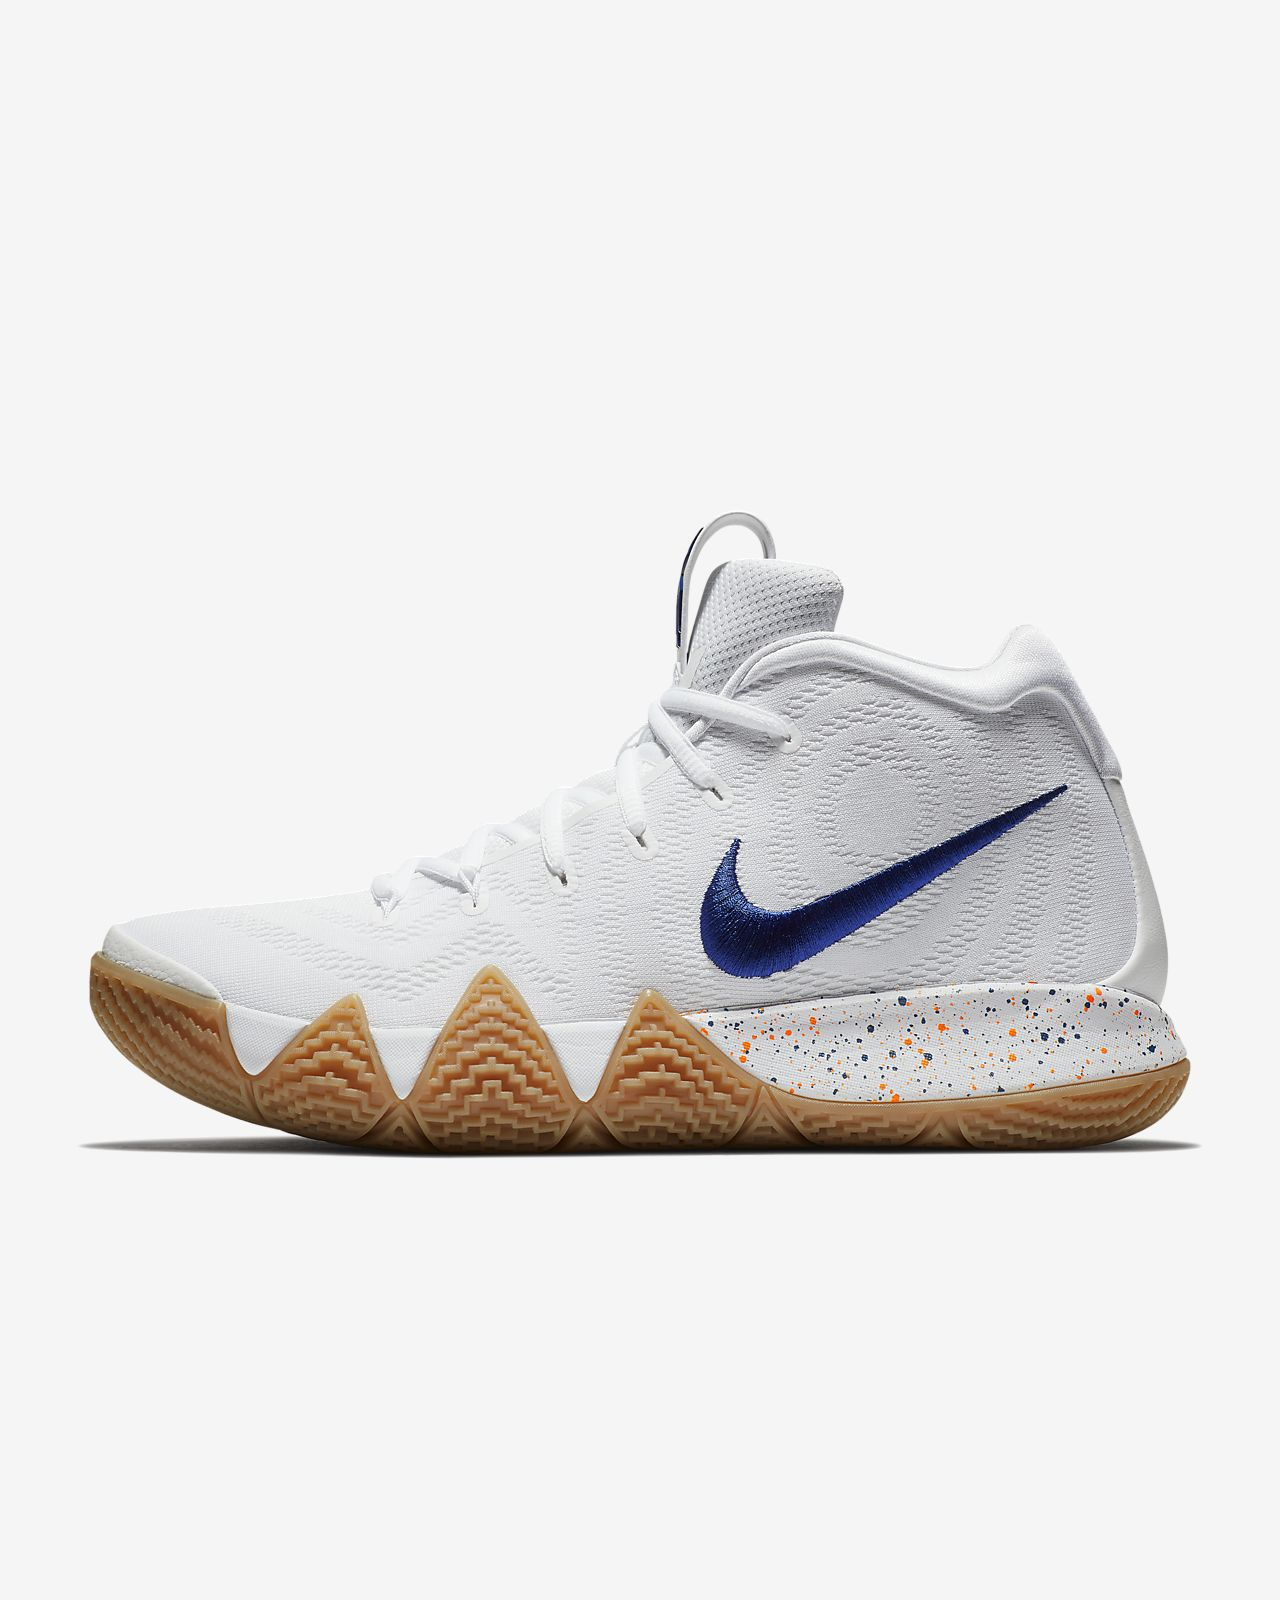 on sale 18d35 bc740 Kyrie 4 'Uncle Drew' Basketball Shoe